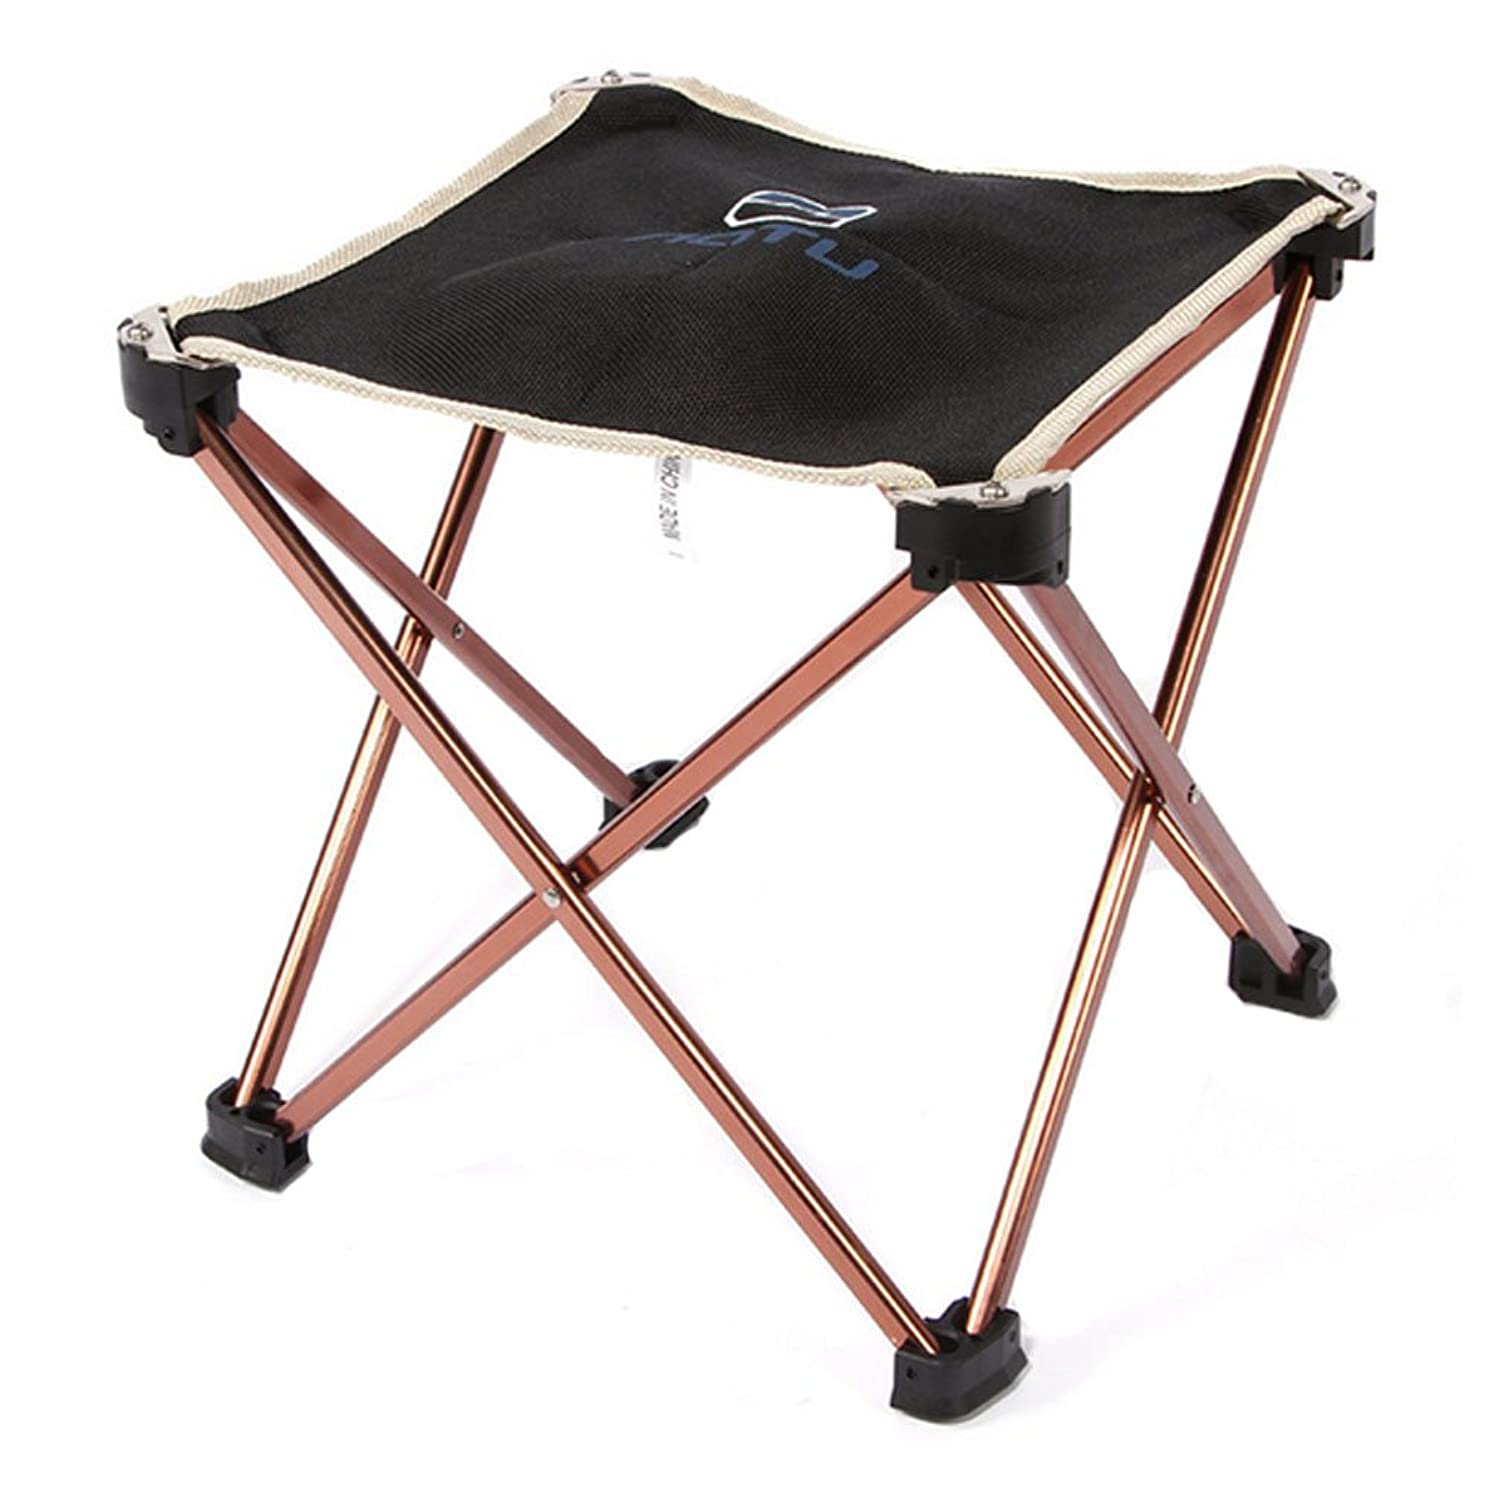 Bry Protable Folding Stool Aluminum Oxford Cloth Stool Chair For Camping Fishing Traveling Beach